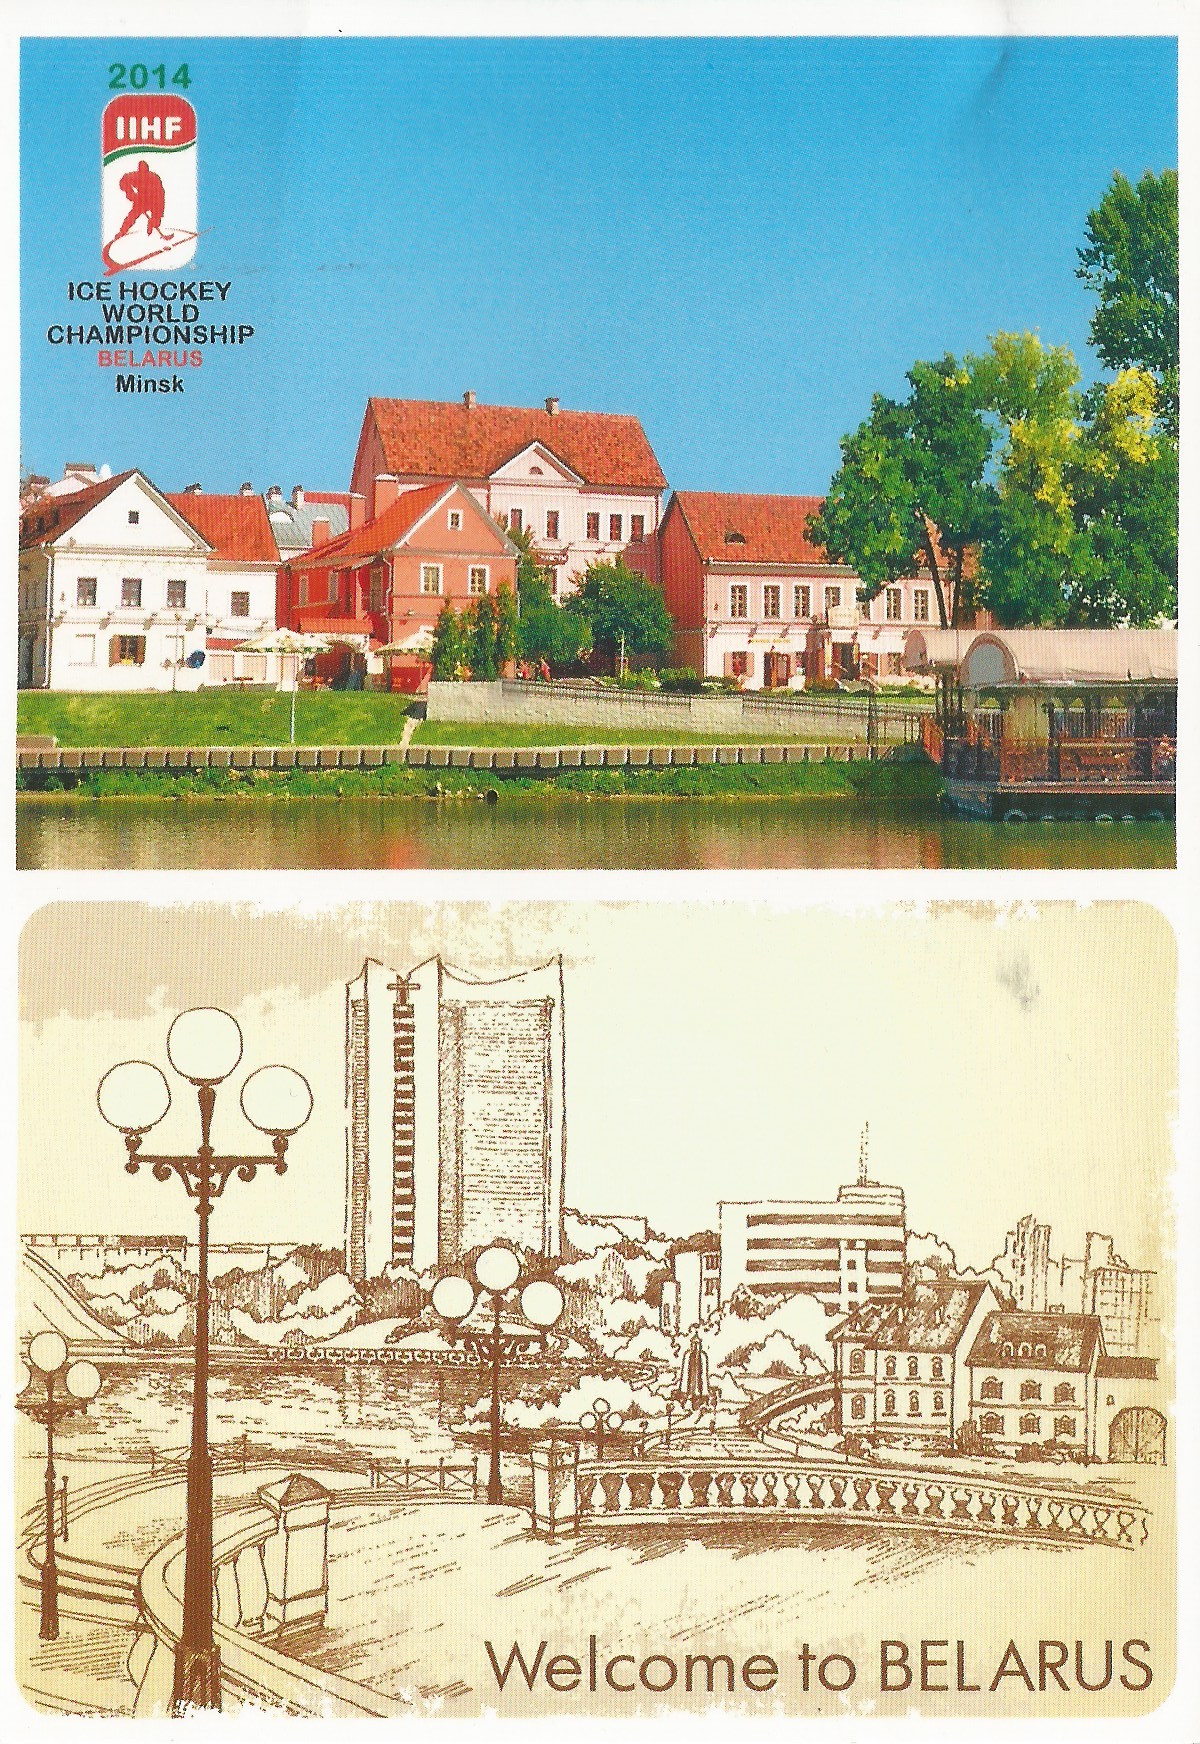 Another Postcard from Belarus